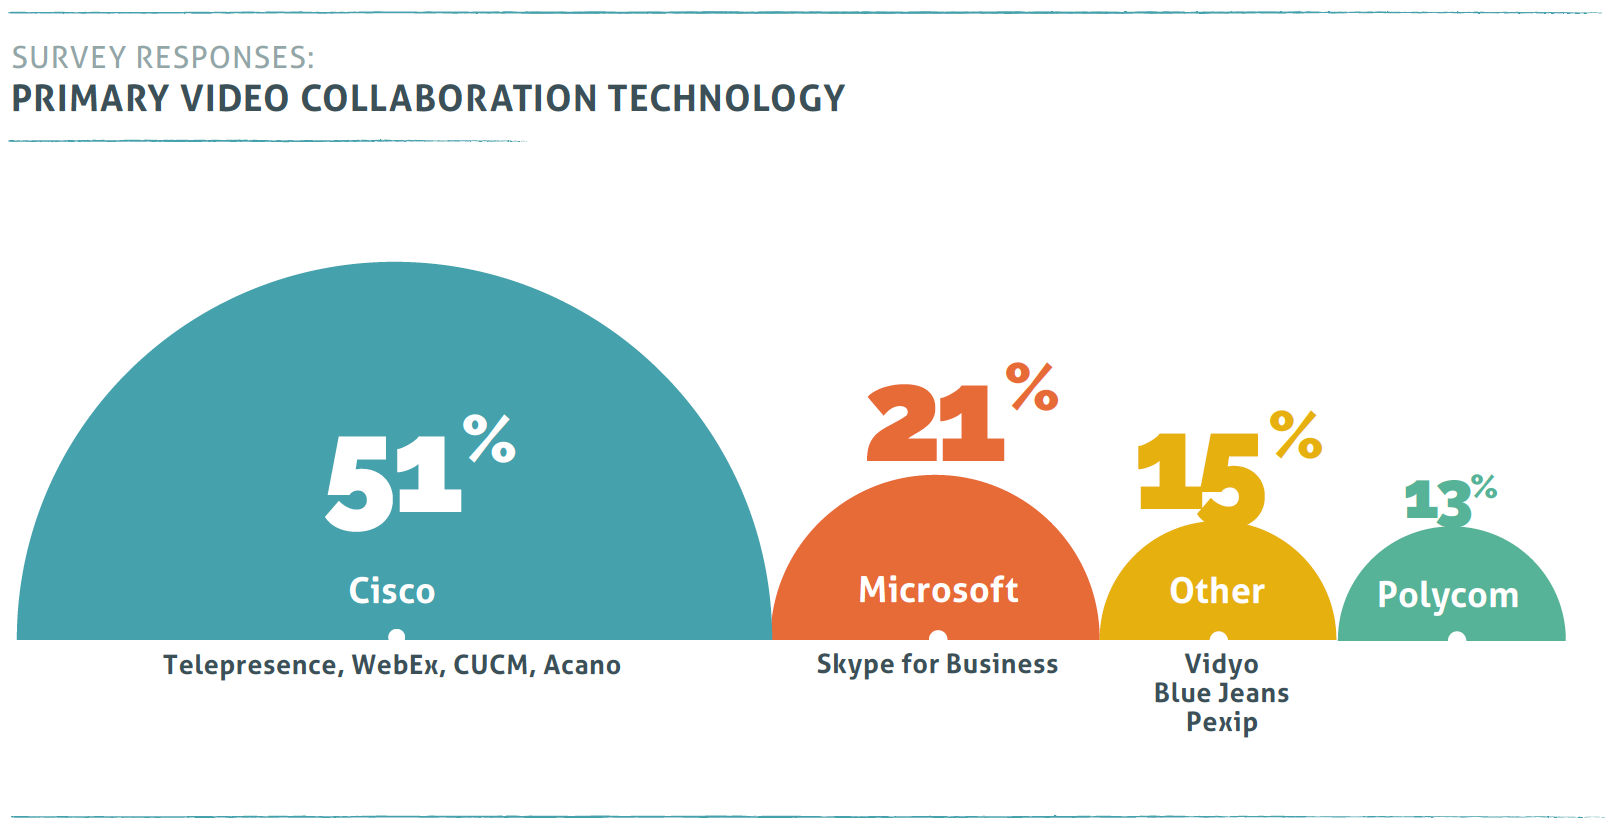 Primary video conferencing technology survey responses for cisco, skype for business, polycom, vidyo, bluejeans and pexip